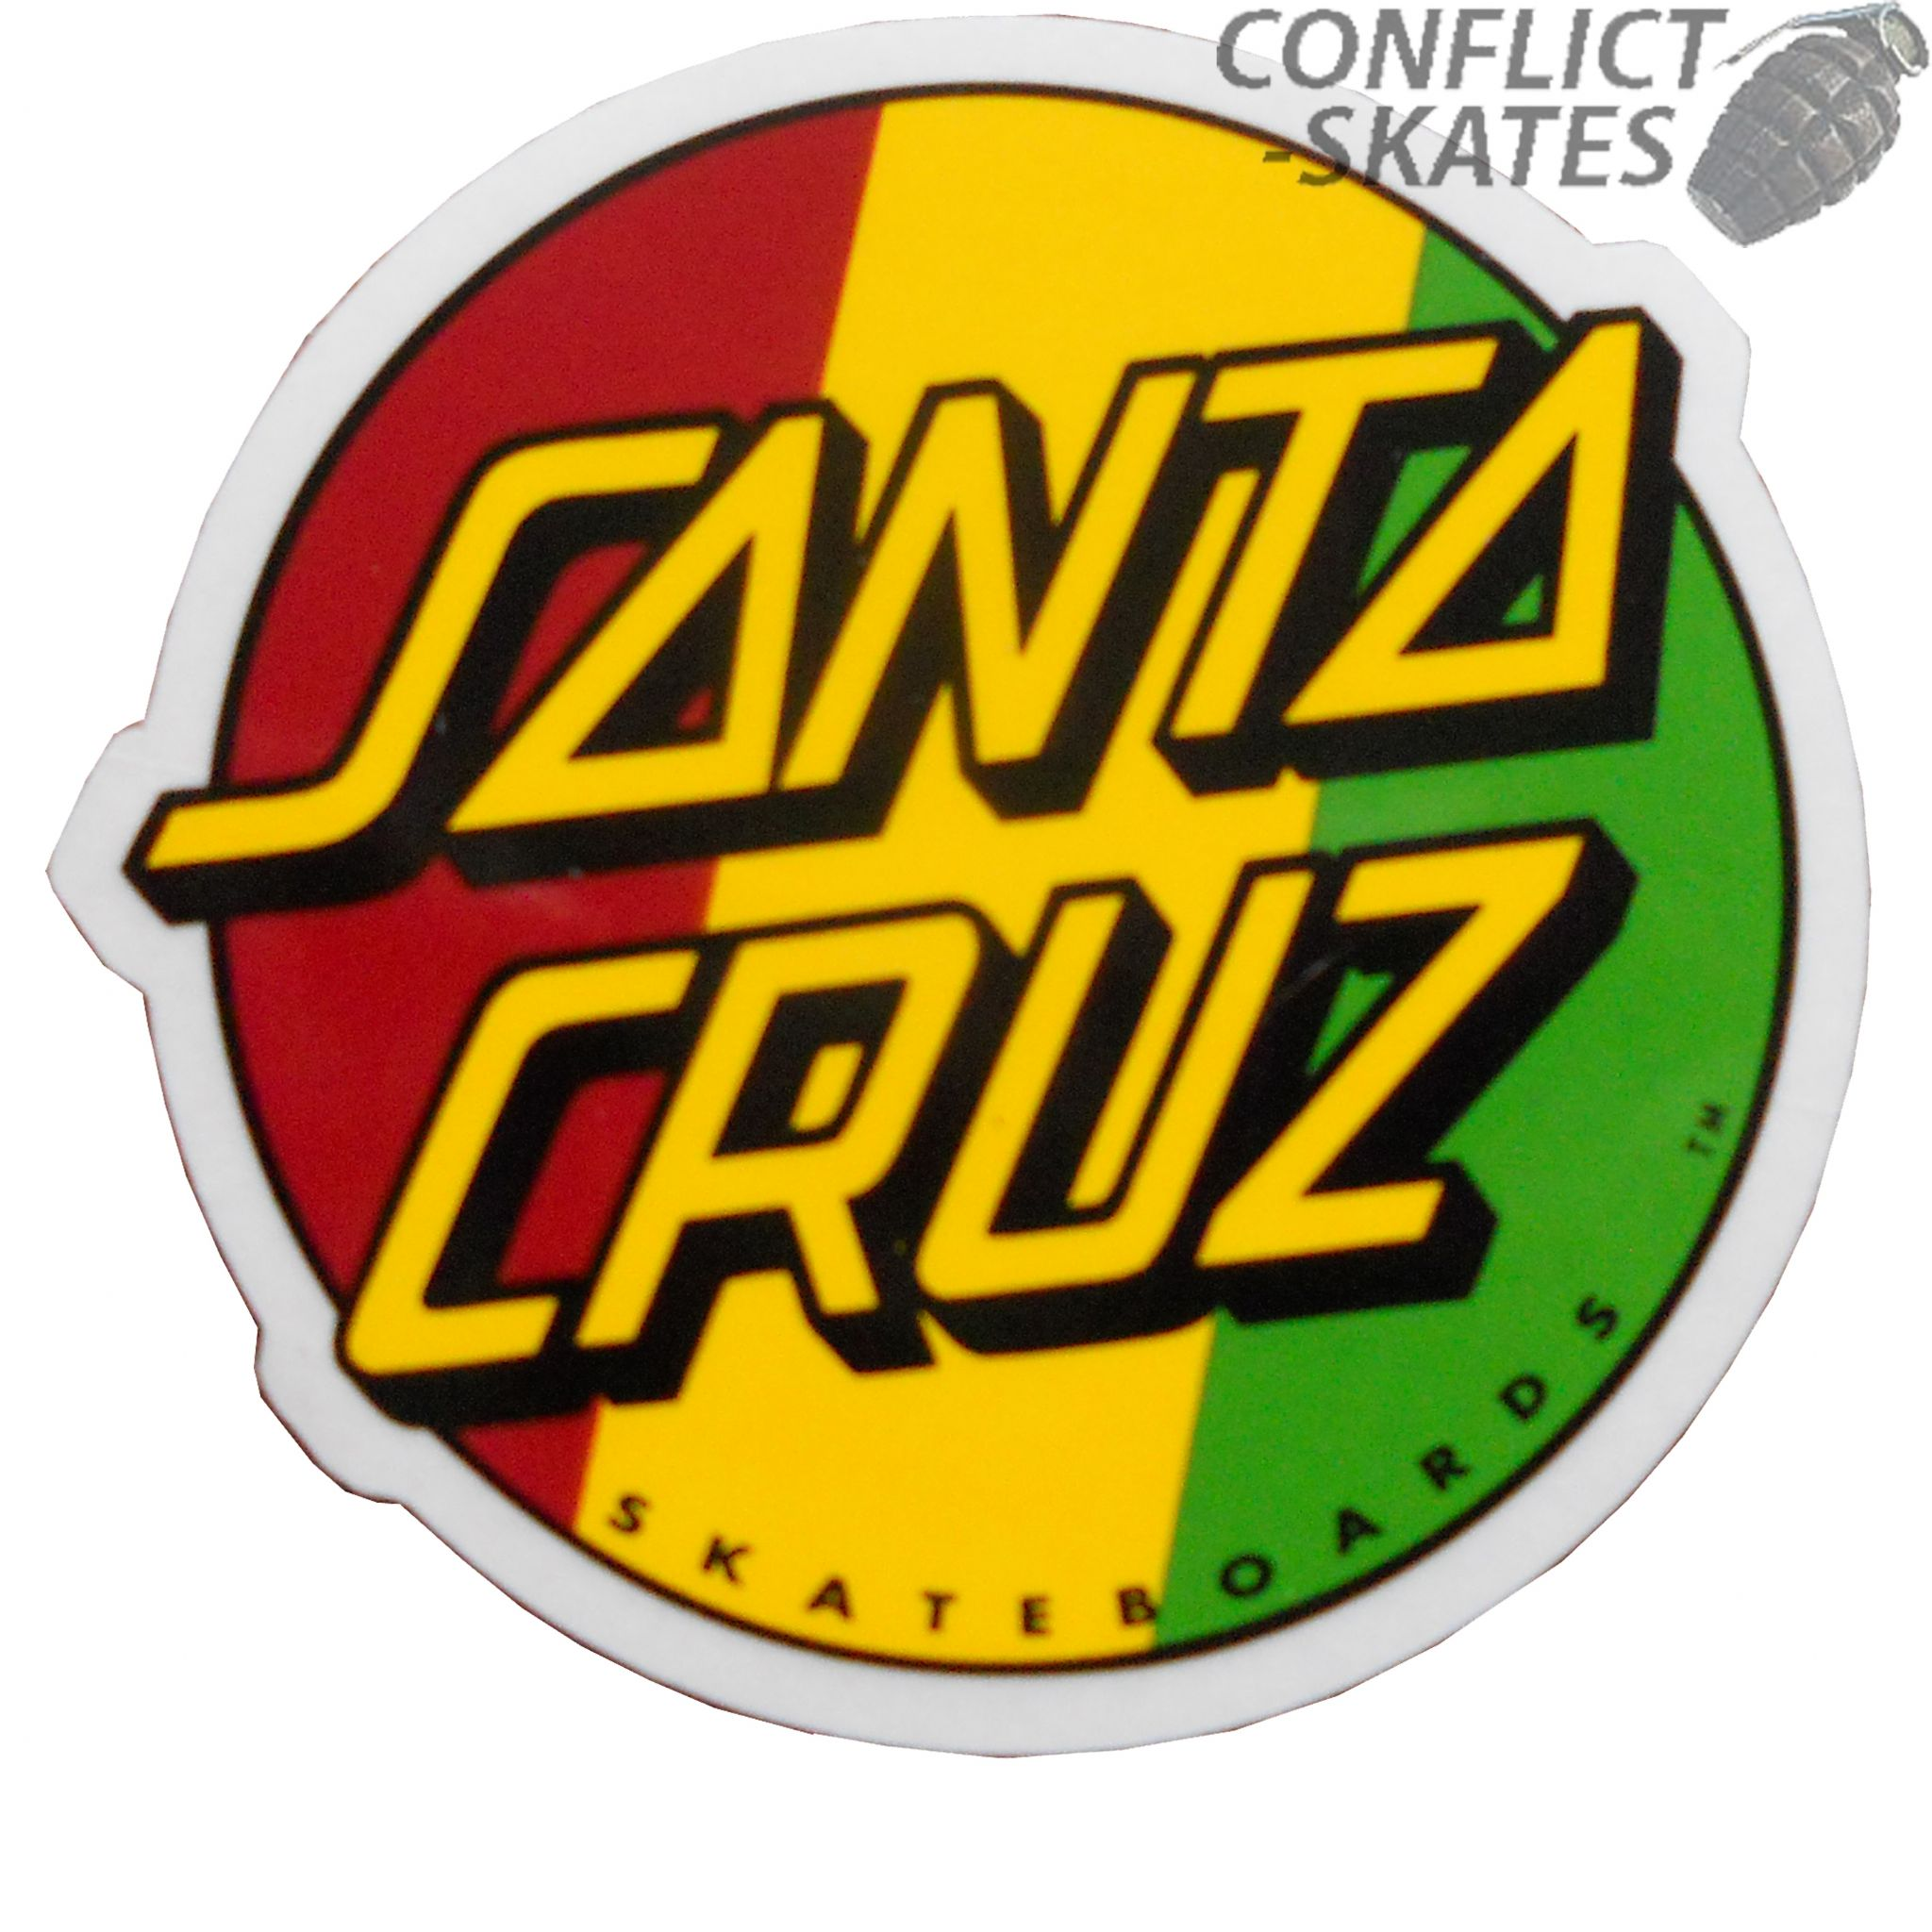 Santa cruz rasta dot skateboard sticker 8cm old skool red gold green small jim phillips